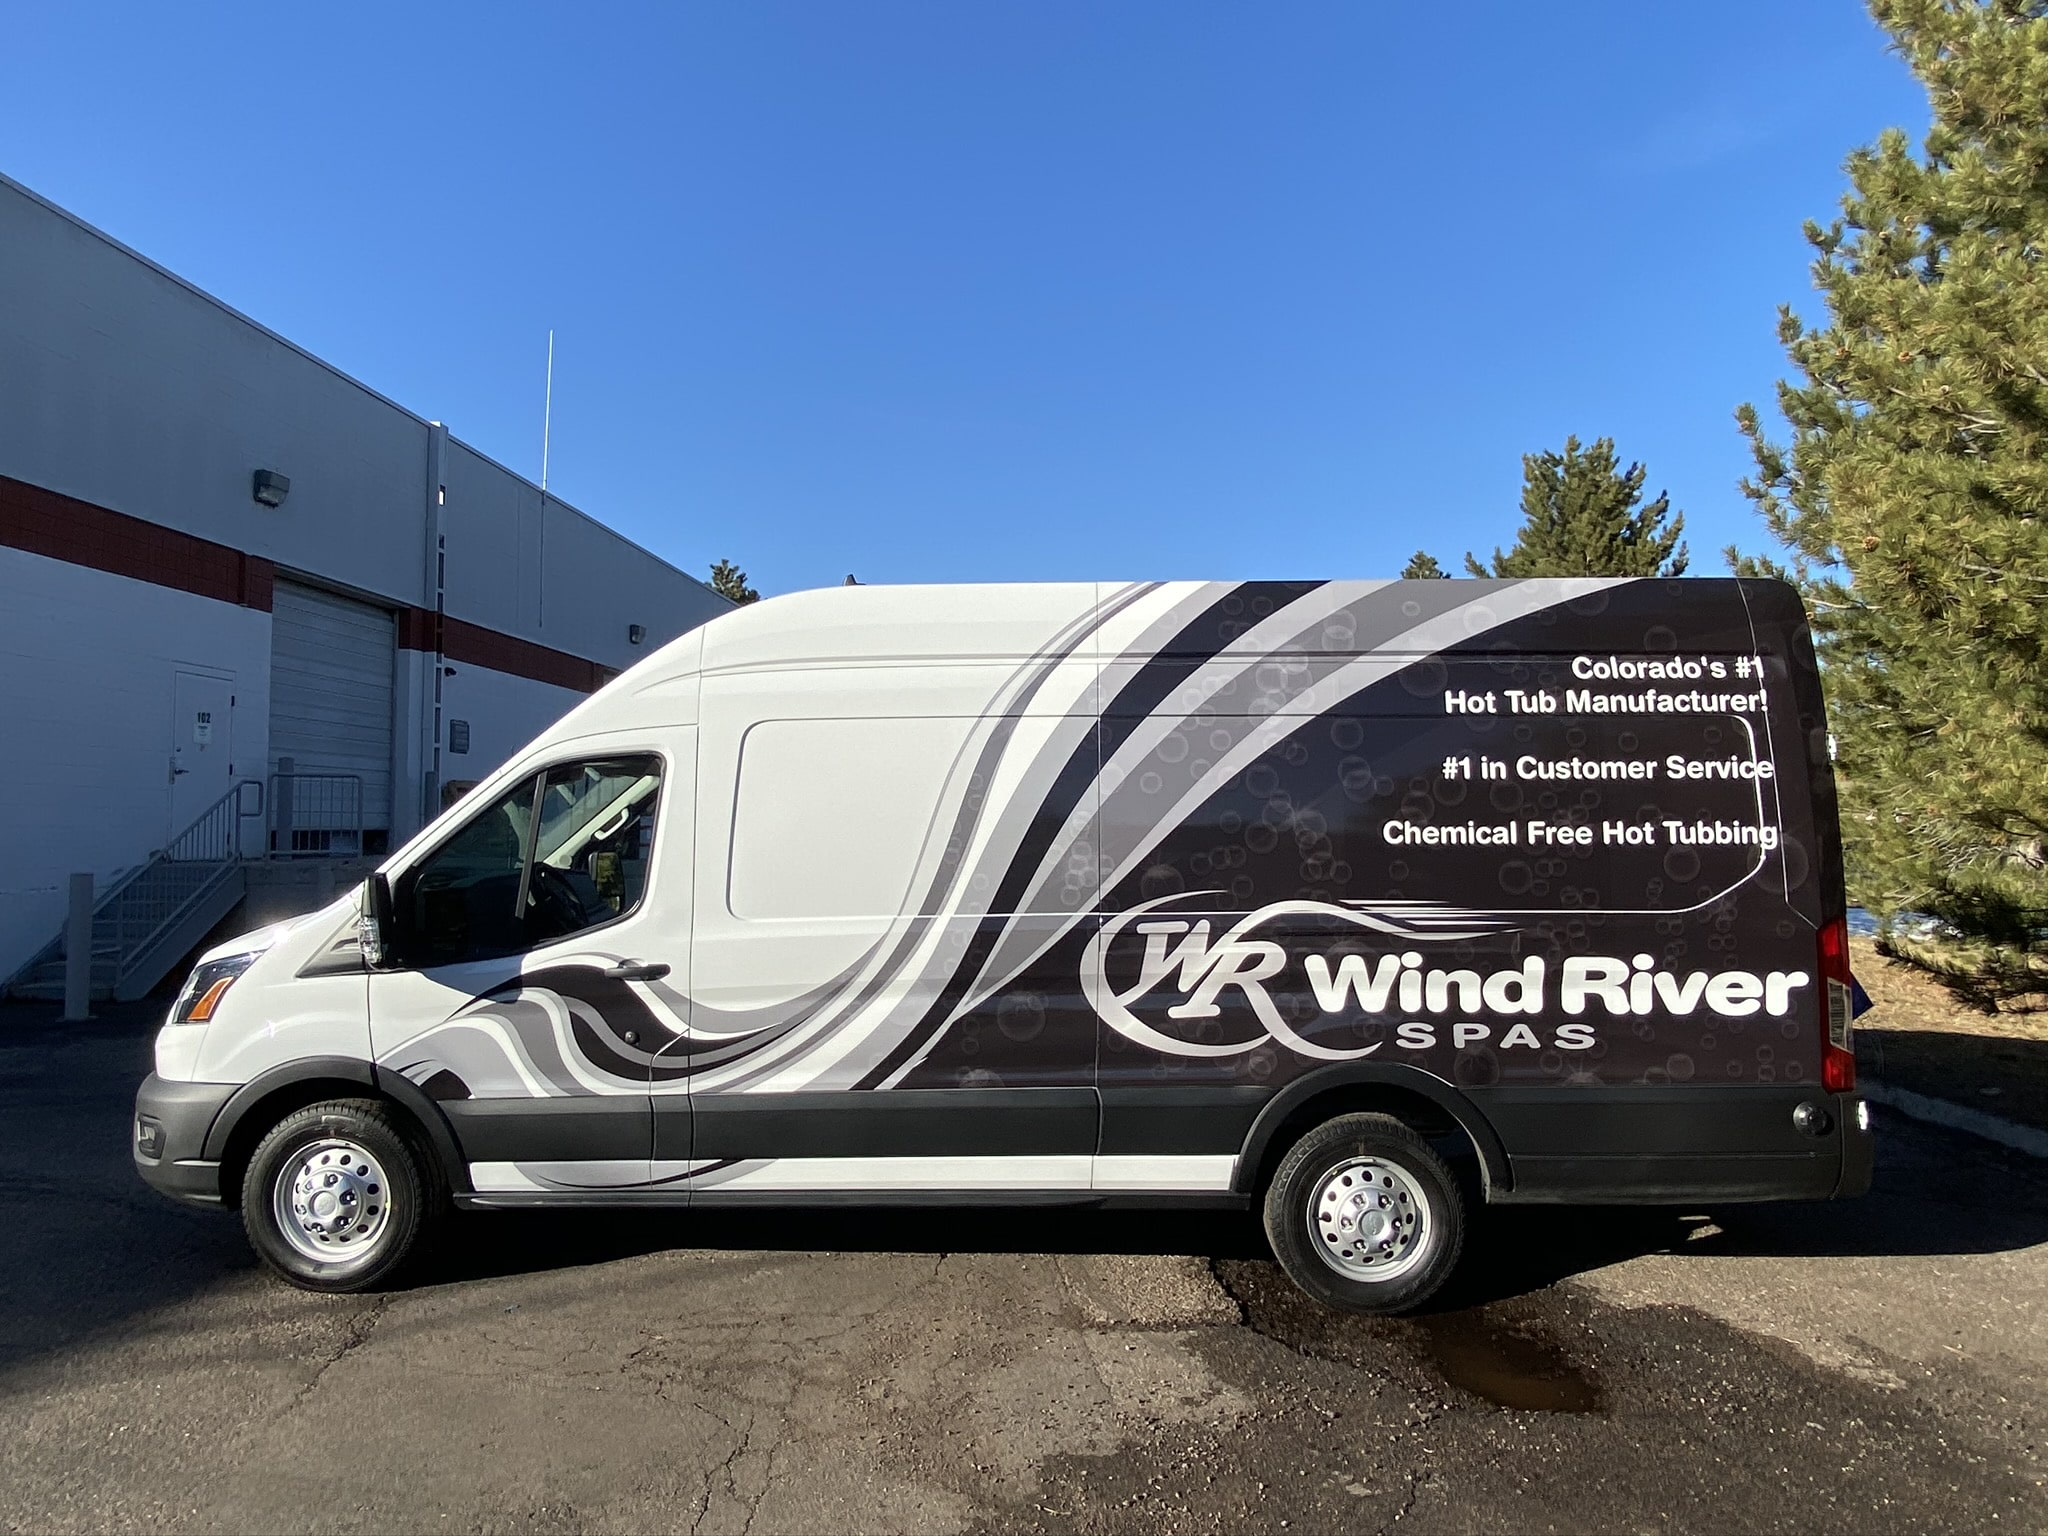 Commercial Vehicle Graphics for WR Van in Denver, CO